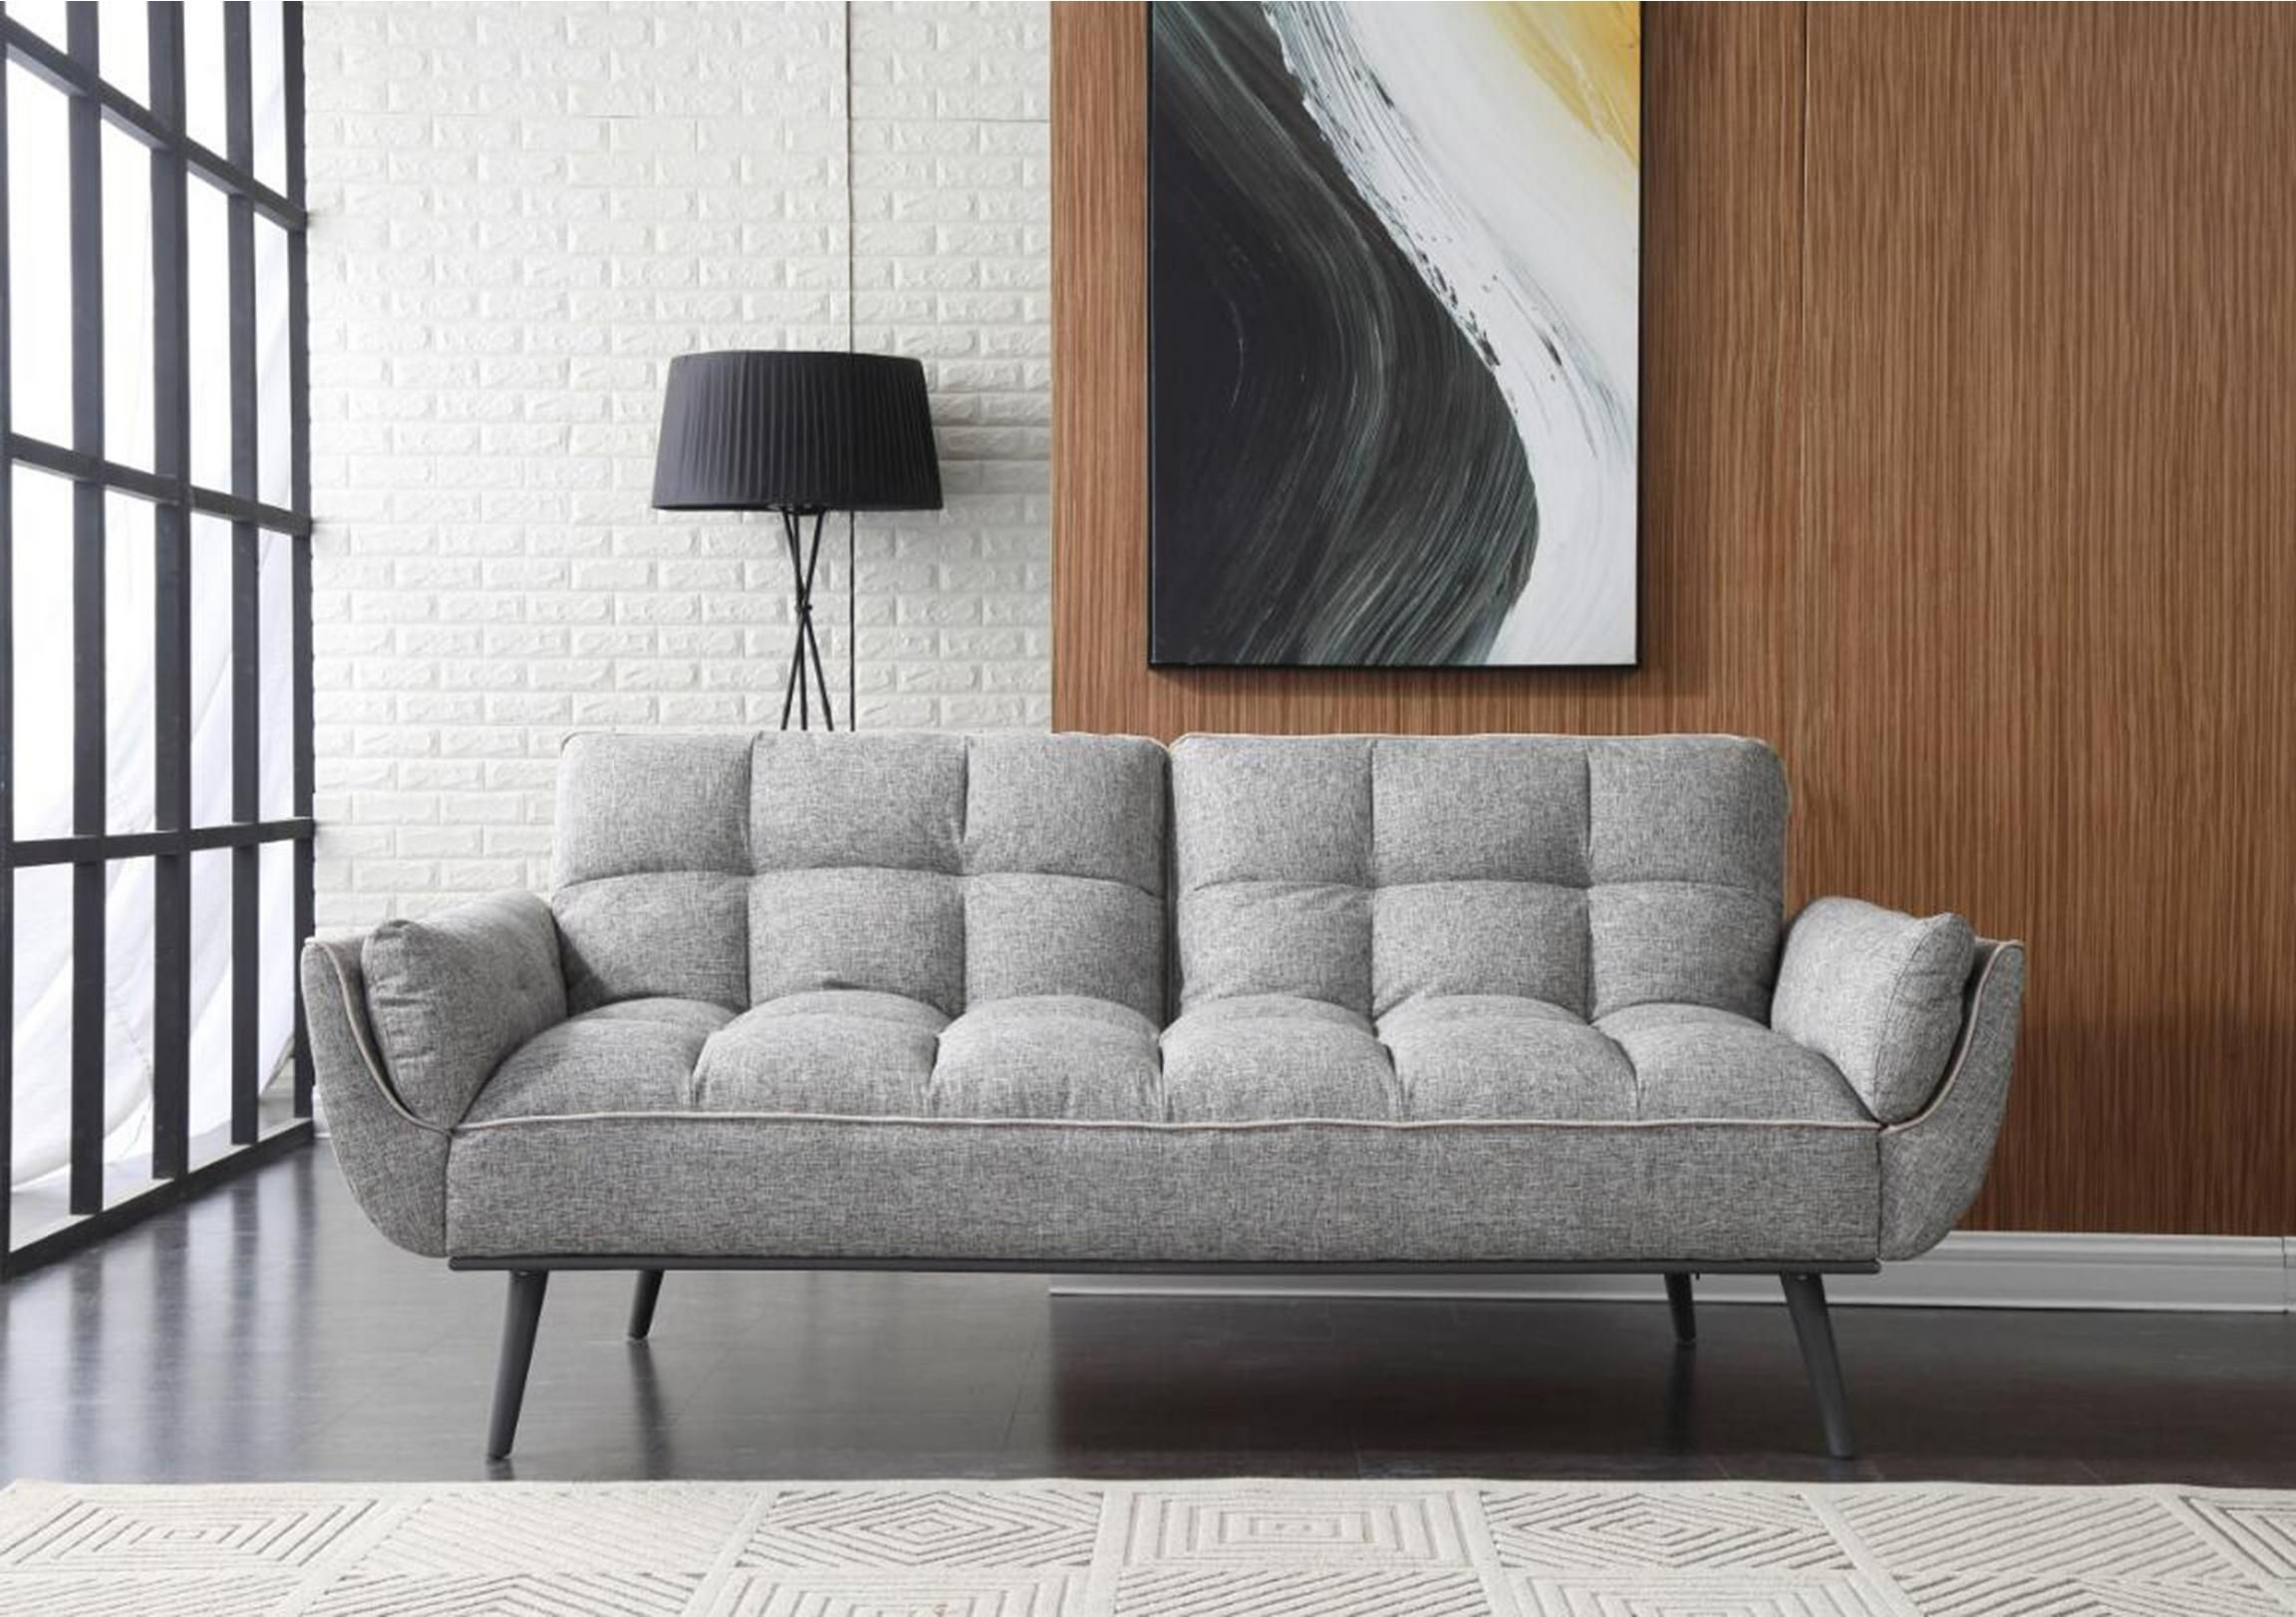 Fabulously Stylish Modern Sofa Bed With Cushioned, Panelled, Buttoned Back  And Tapered Metal Legs